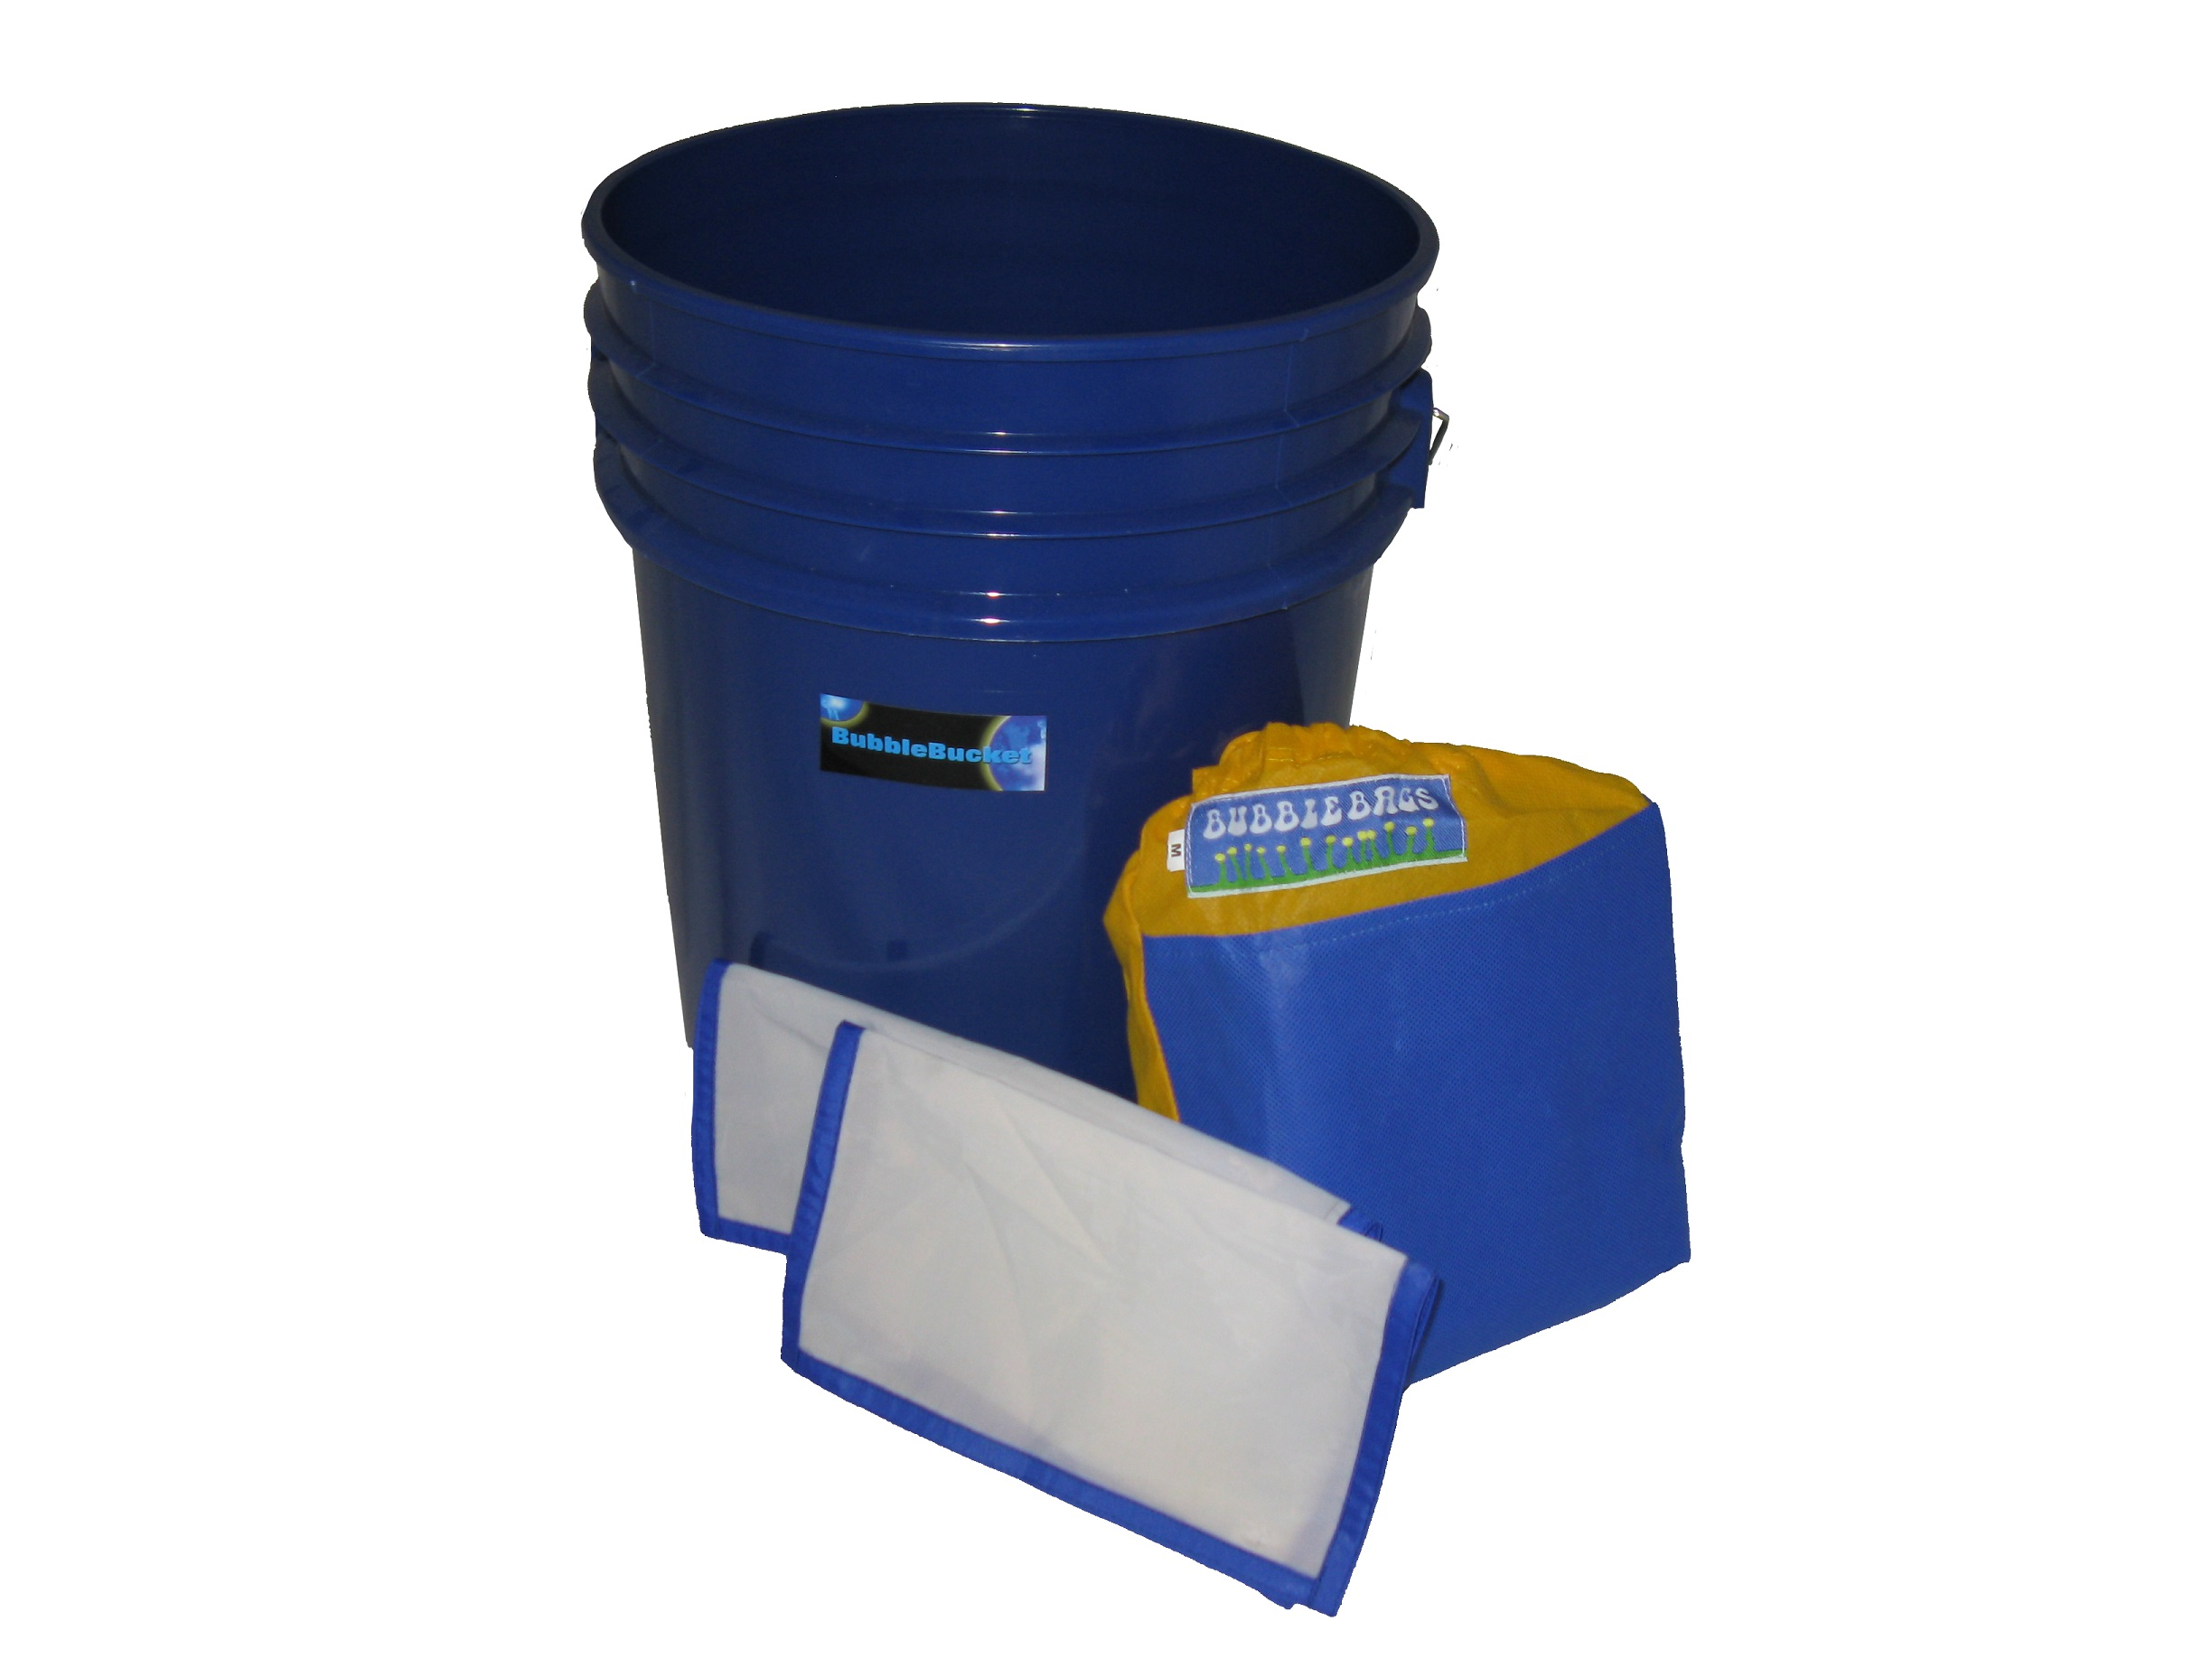 Standard 5 Gallon 4 Bubble Bag Kit With Bucket